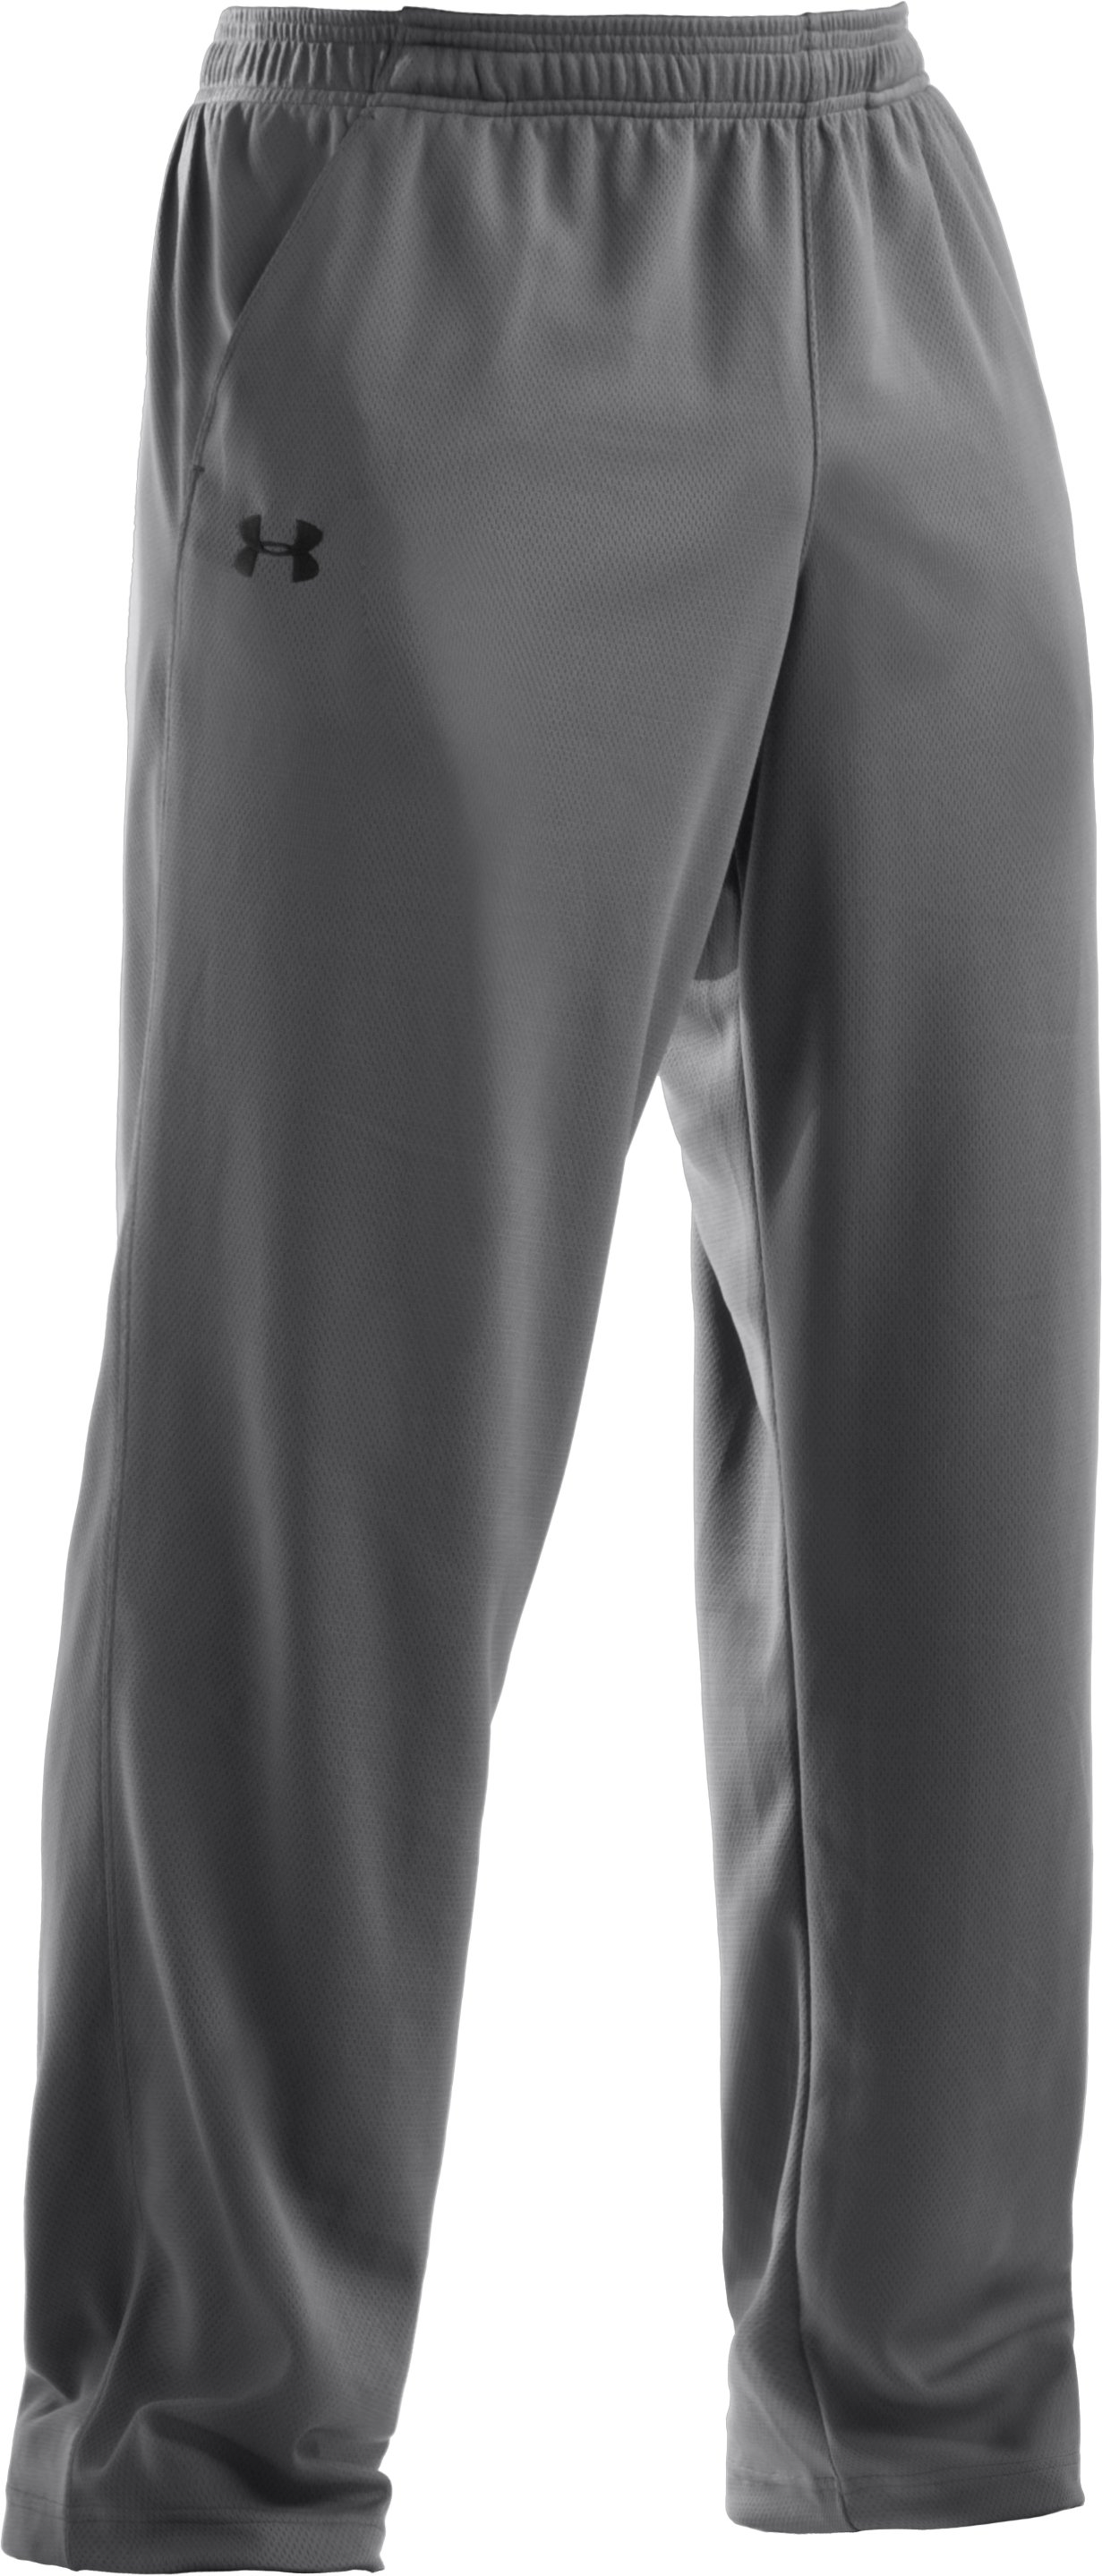 Men's UA Flex Pants Tall, Graphite